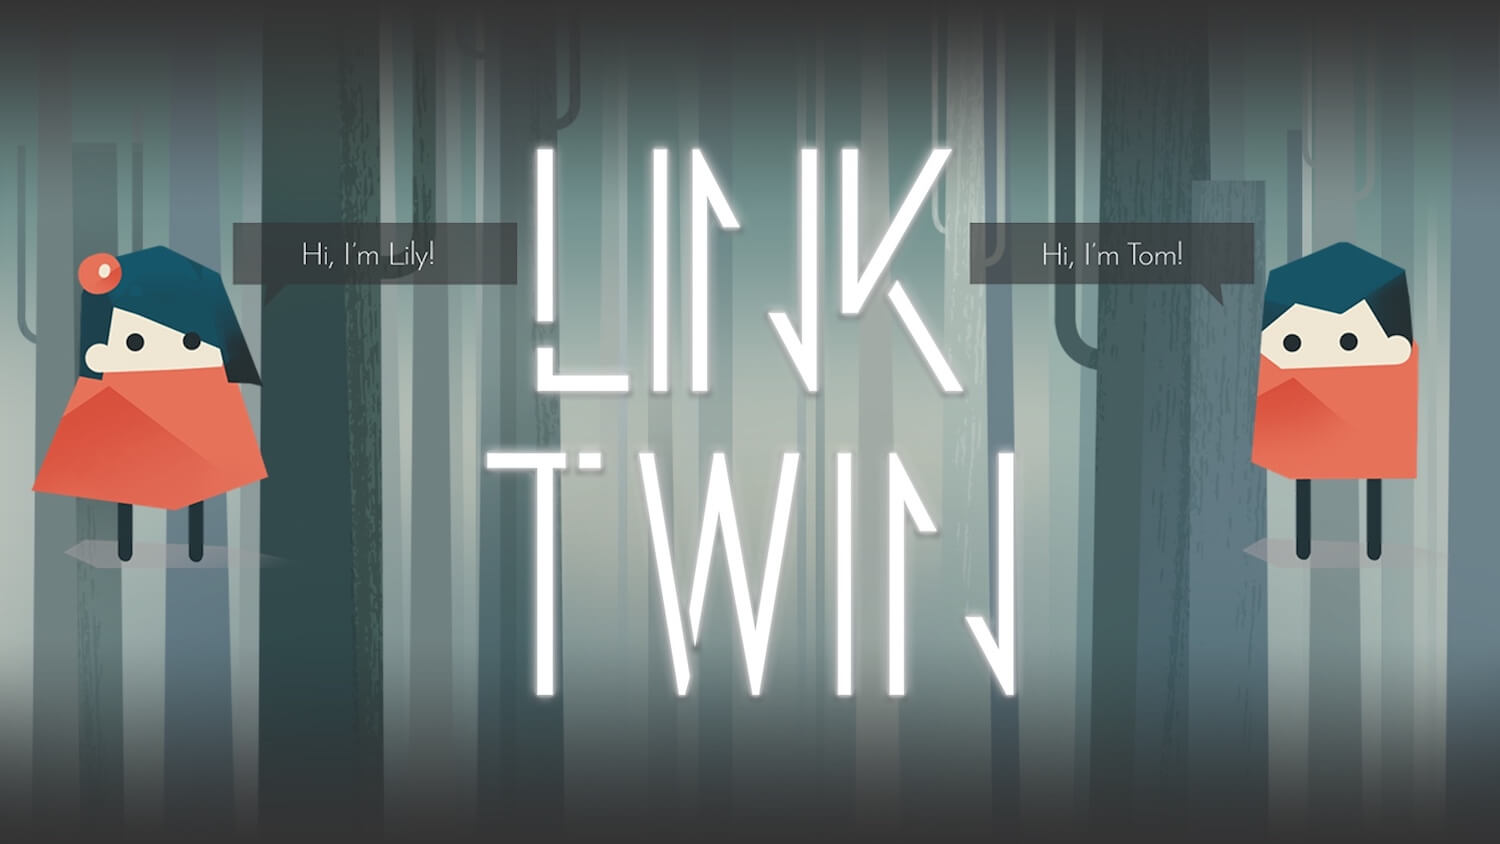 124 twin link